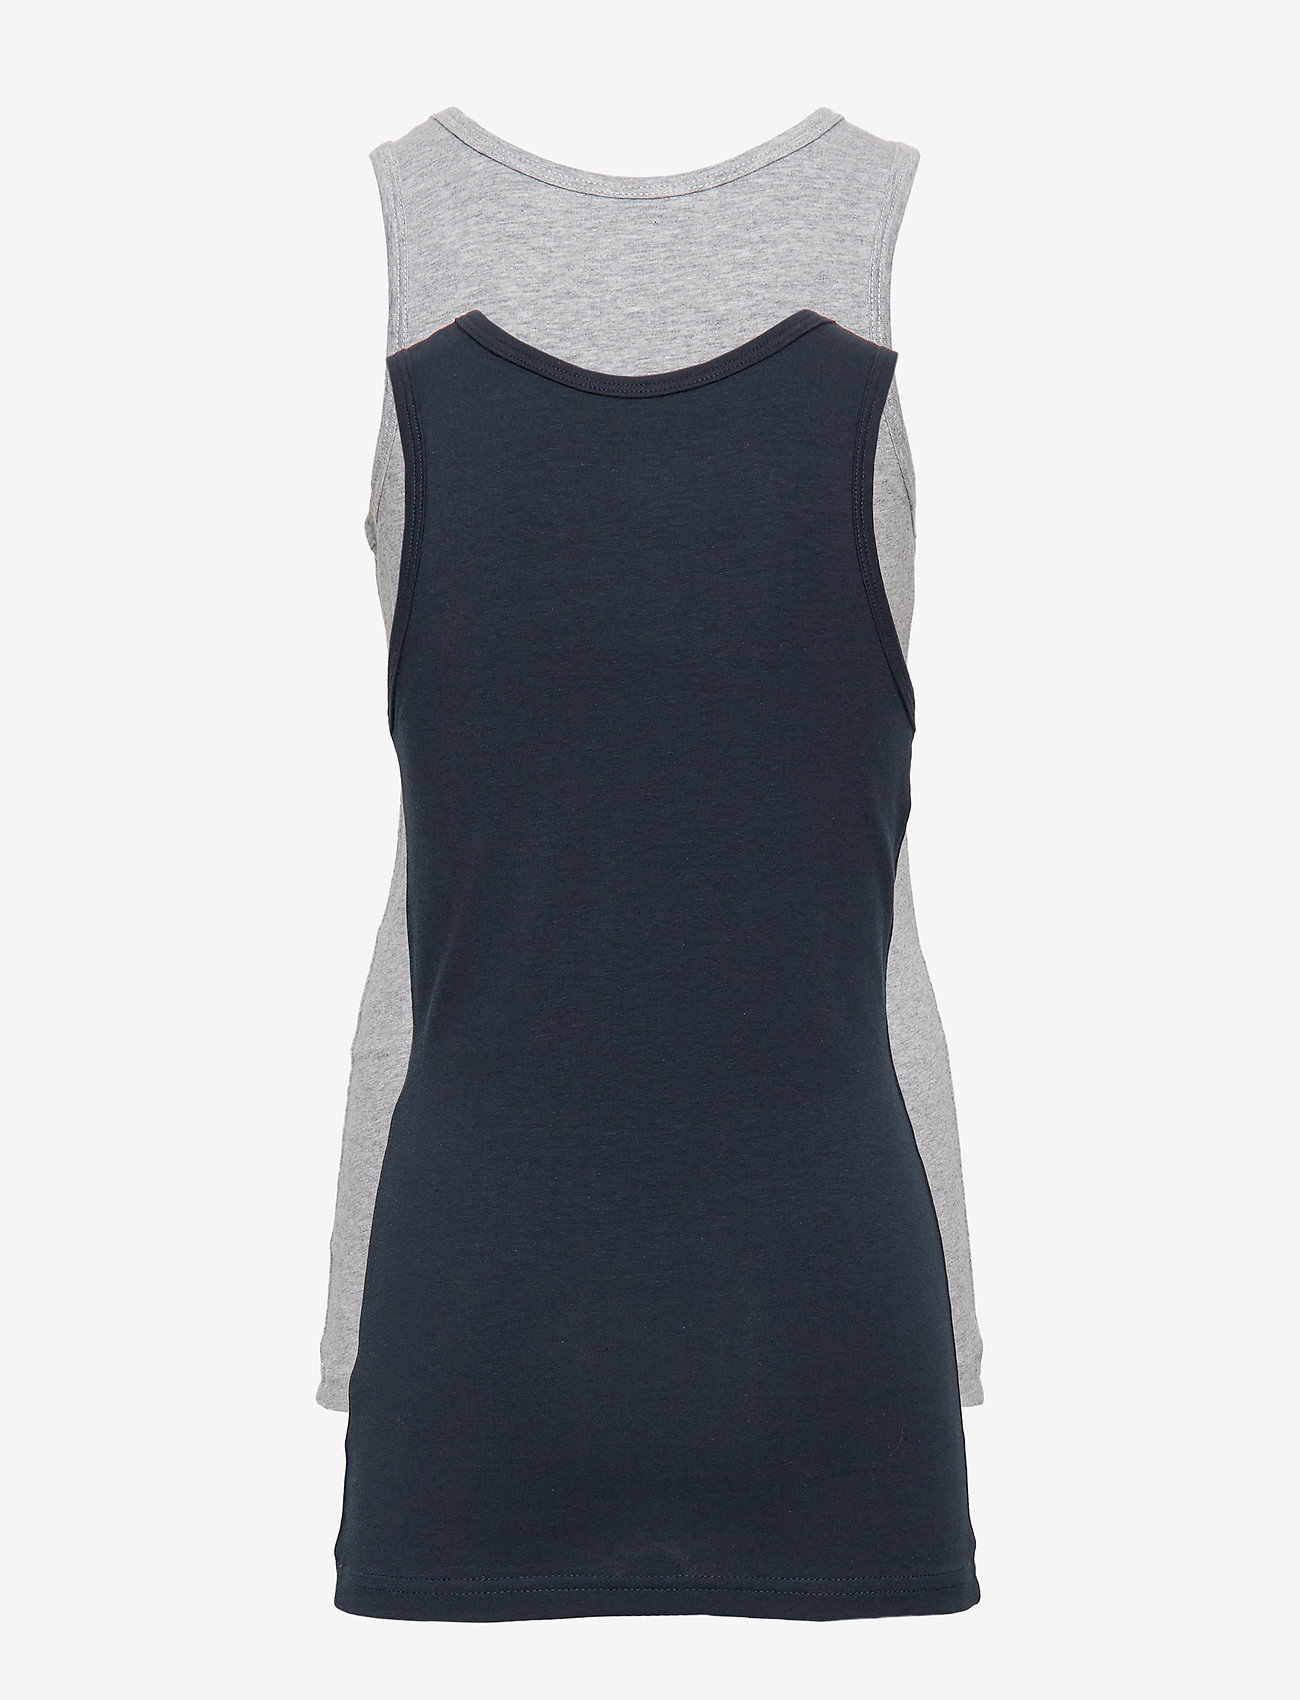 name it - NKMTANK TOP 2P GREY MELANGE NOOS - Ærmeløse - grey melange - 1